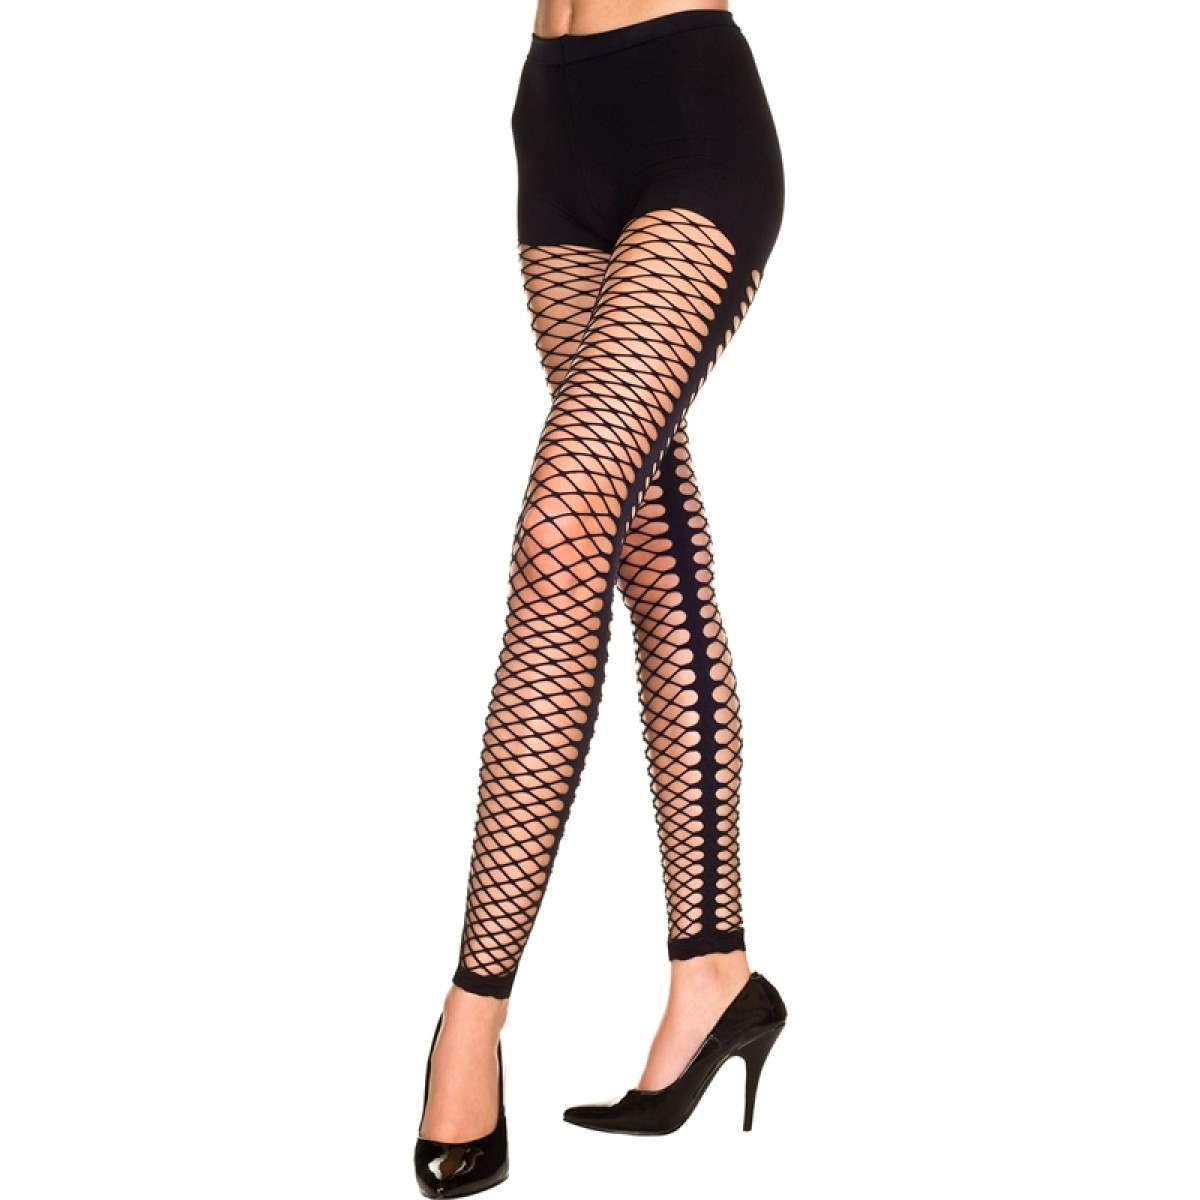 Black net leggings